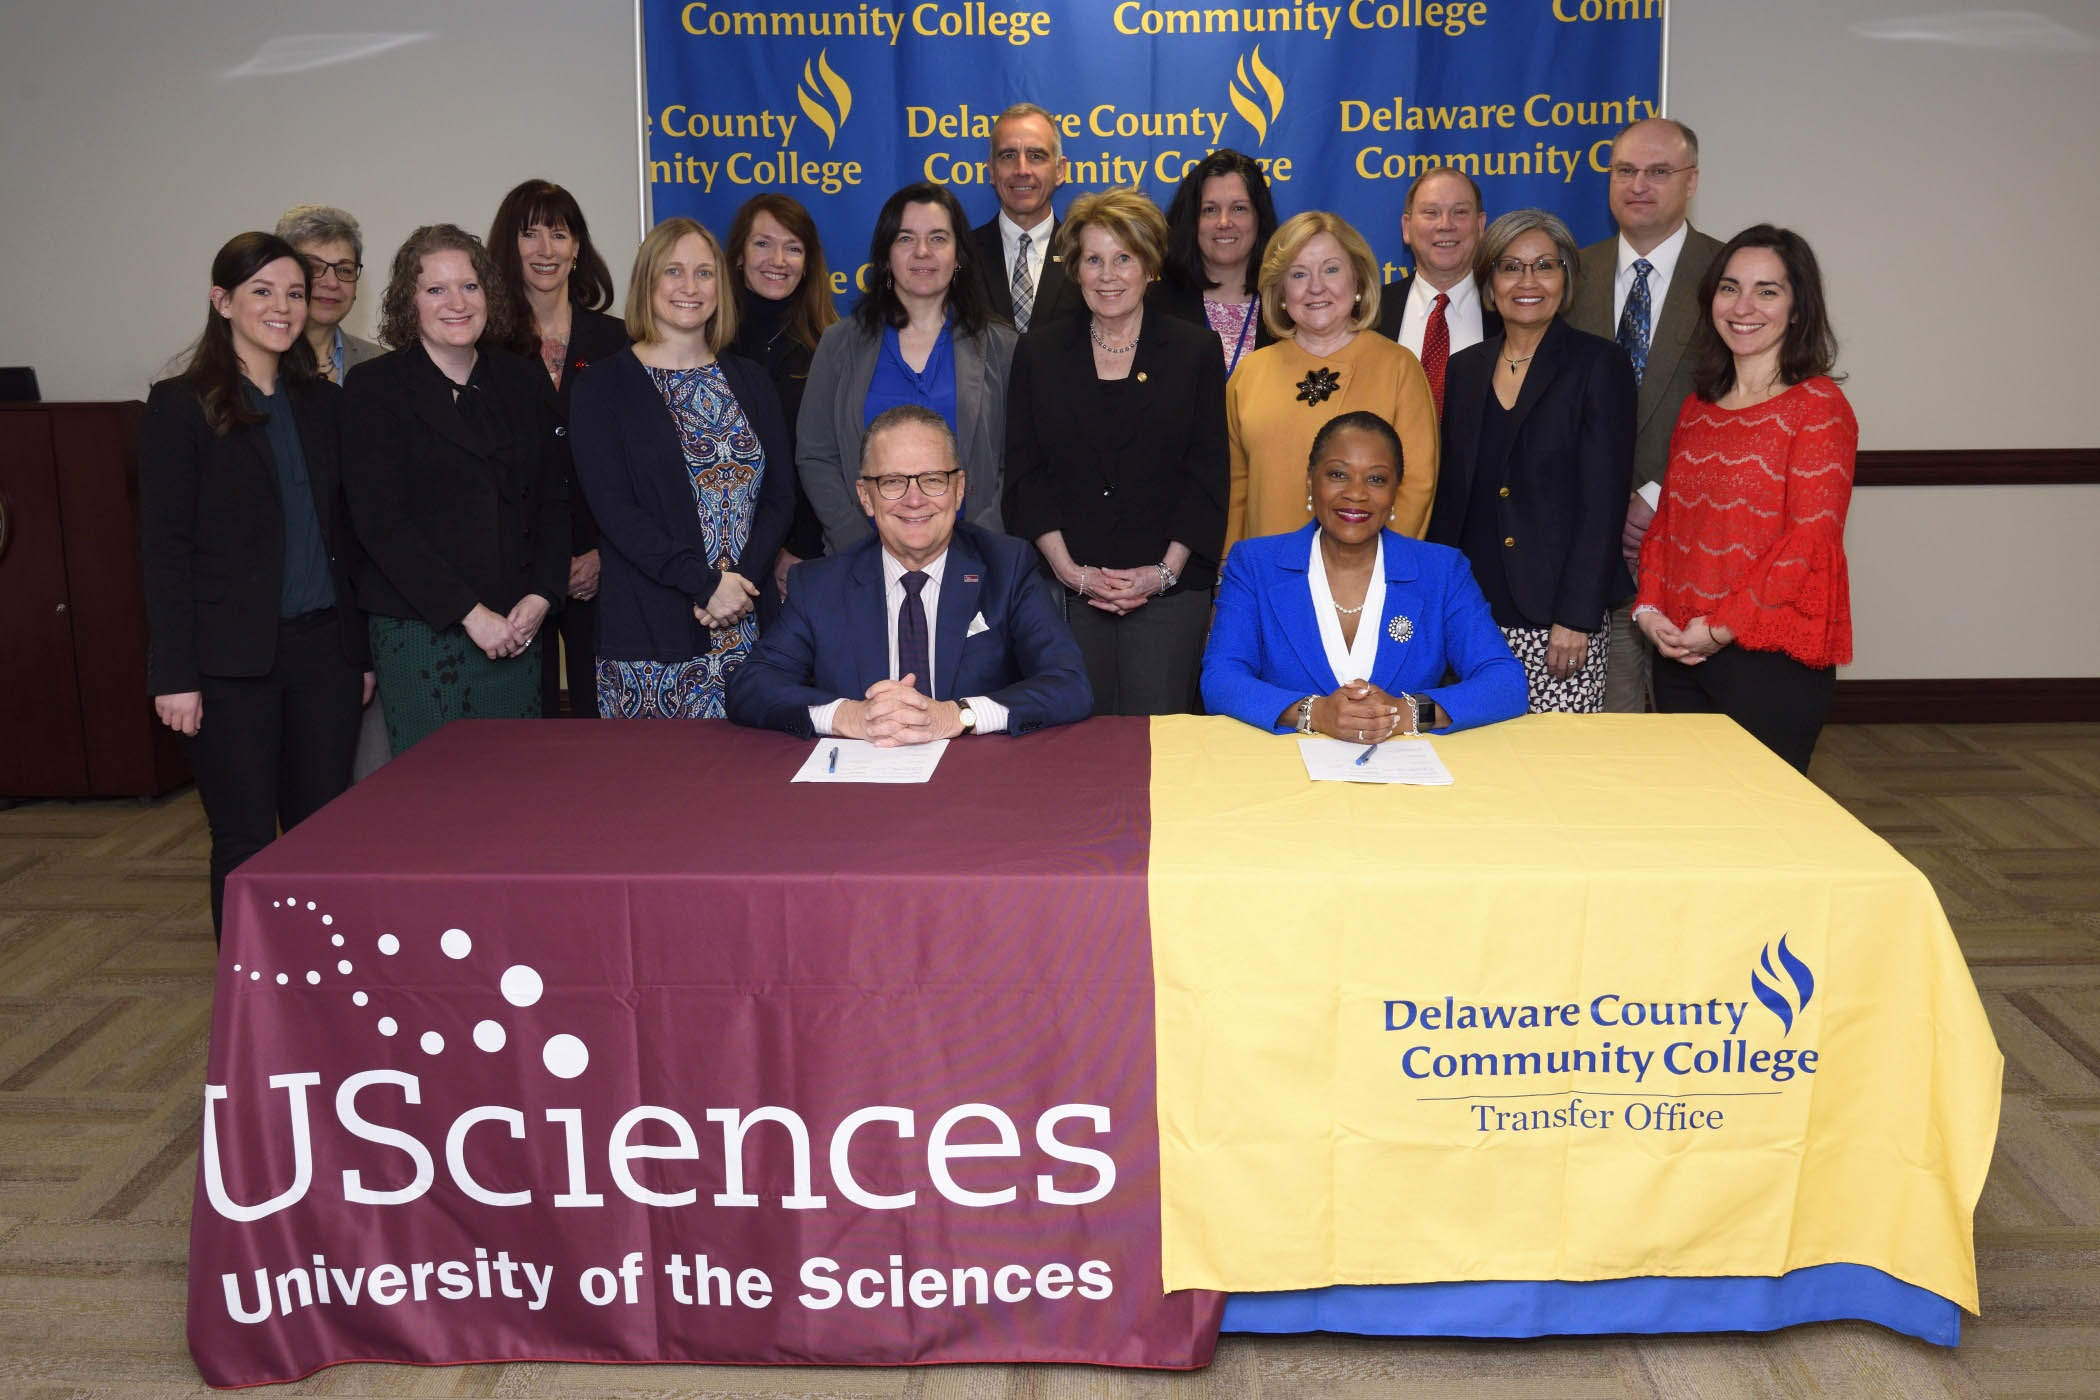 University of the Sciences, Delaware County Community College Sign Admission Agreement